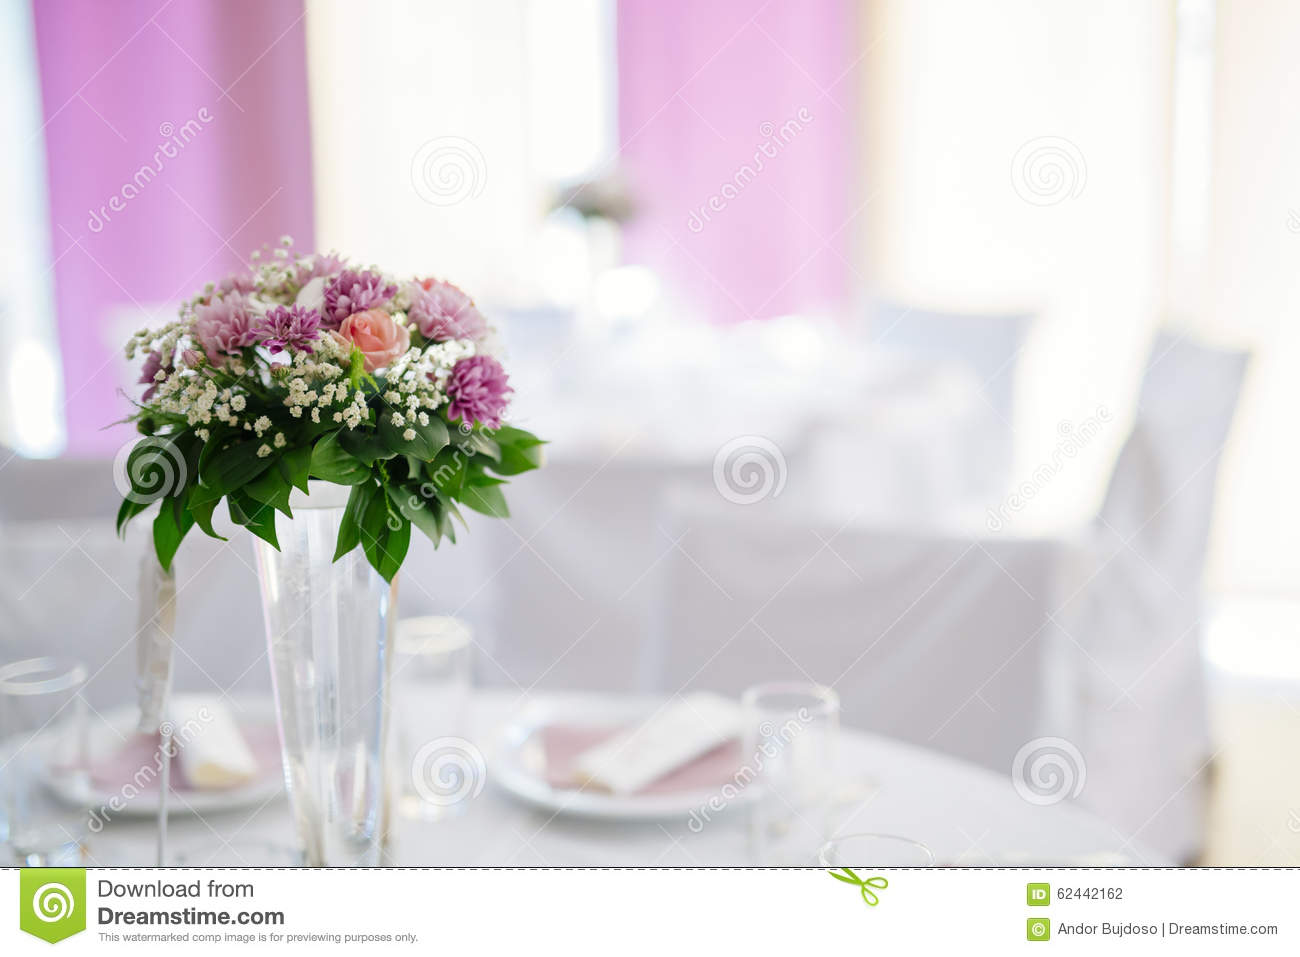 d coration de mariage avec des fleurs dans le vase photo. Black Bedroom Furniture Sets. Home Design Ideas